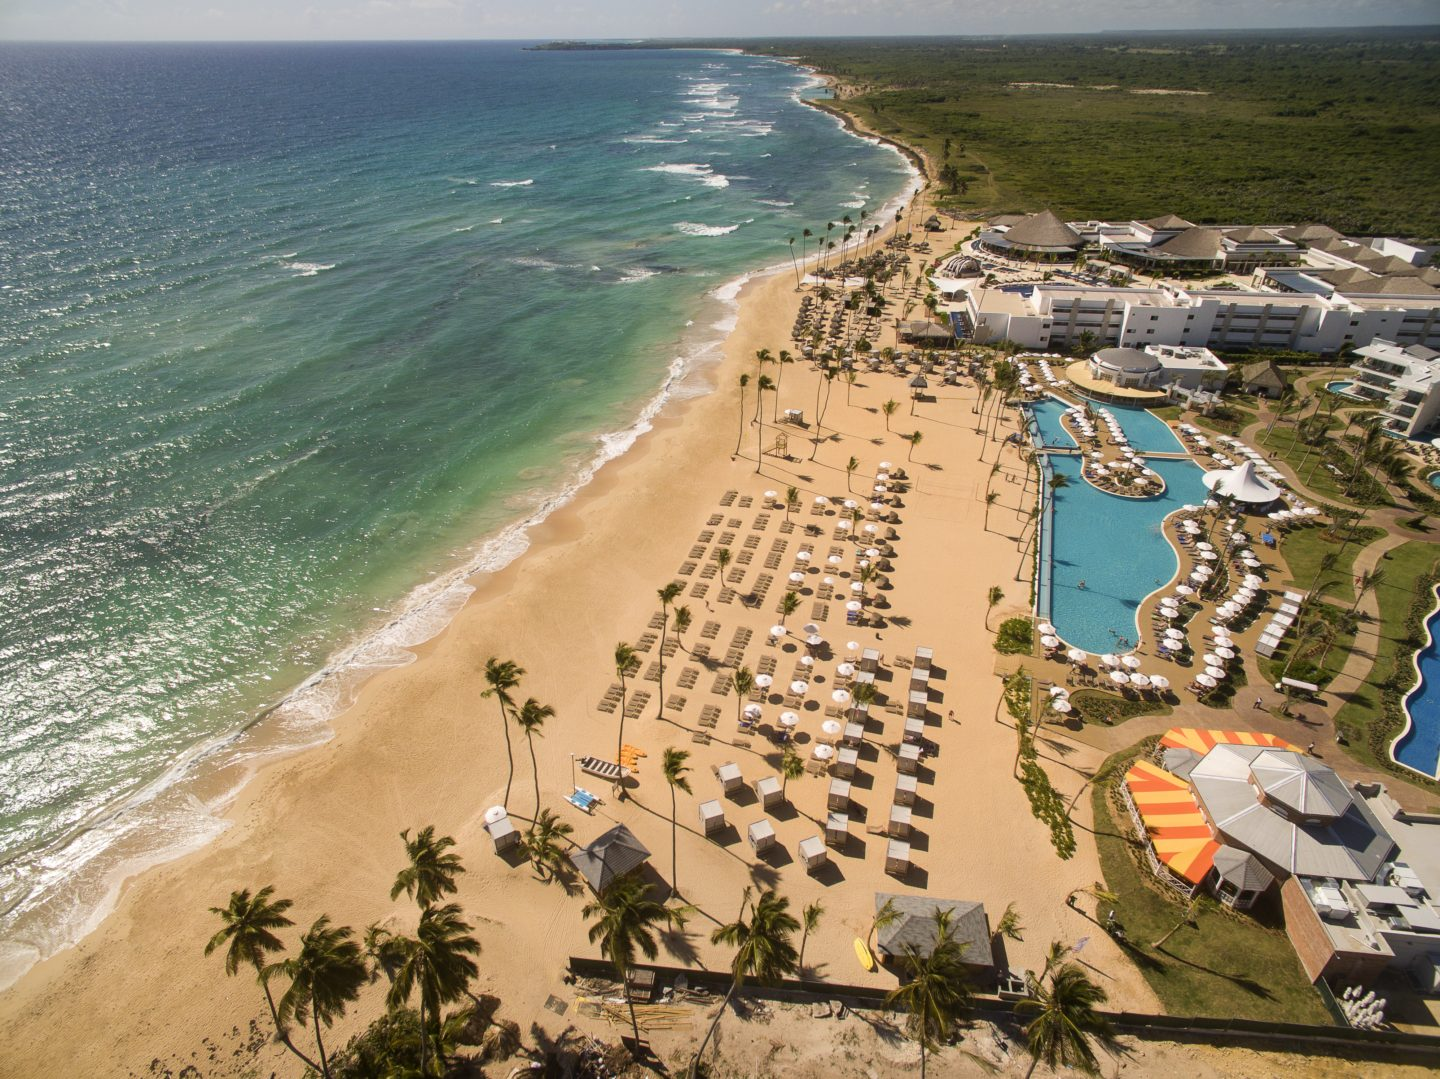 All-Inclusive Luxury Family Vacation at Nickelodeon Resort Punta Cana: Resort Review